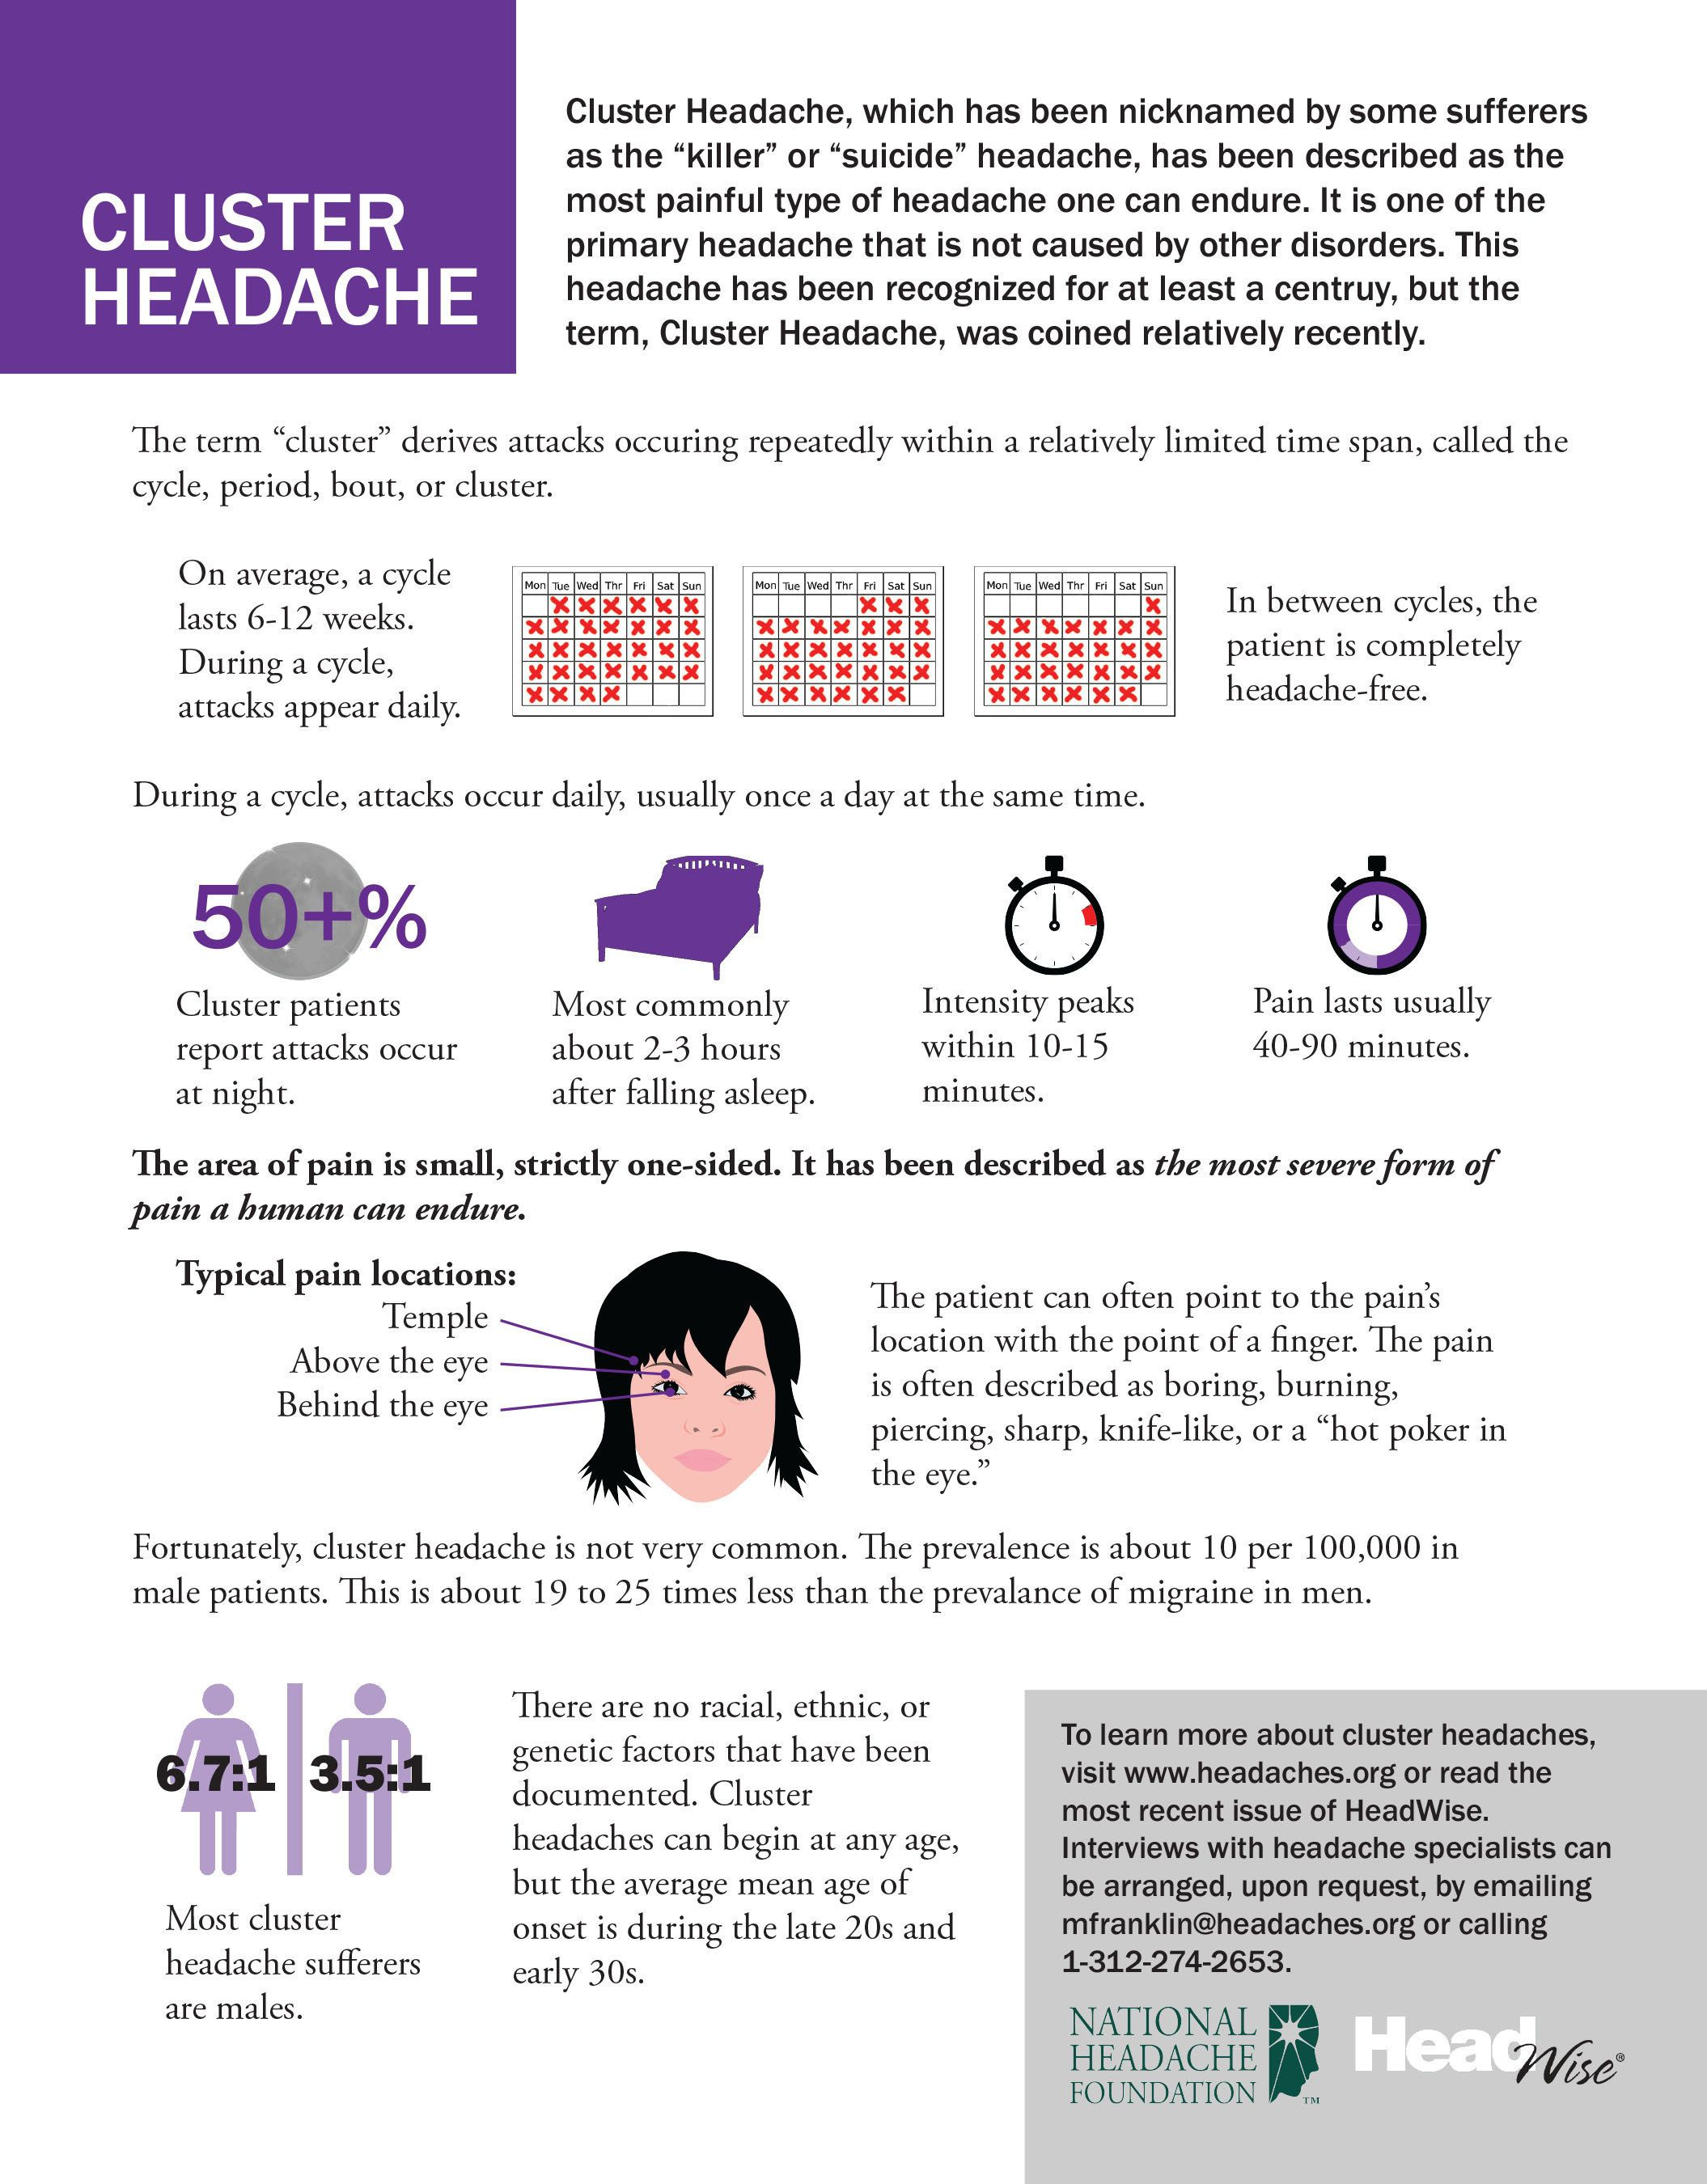 7 Things Only People With Cluster Headaches Can Understand